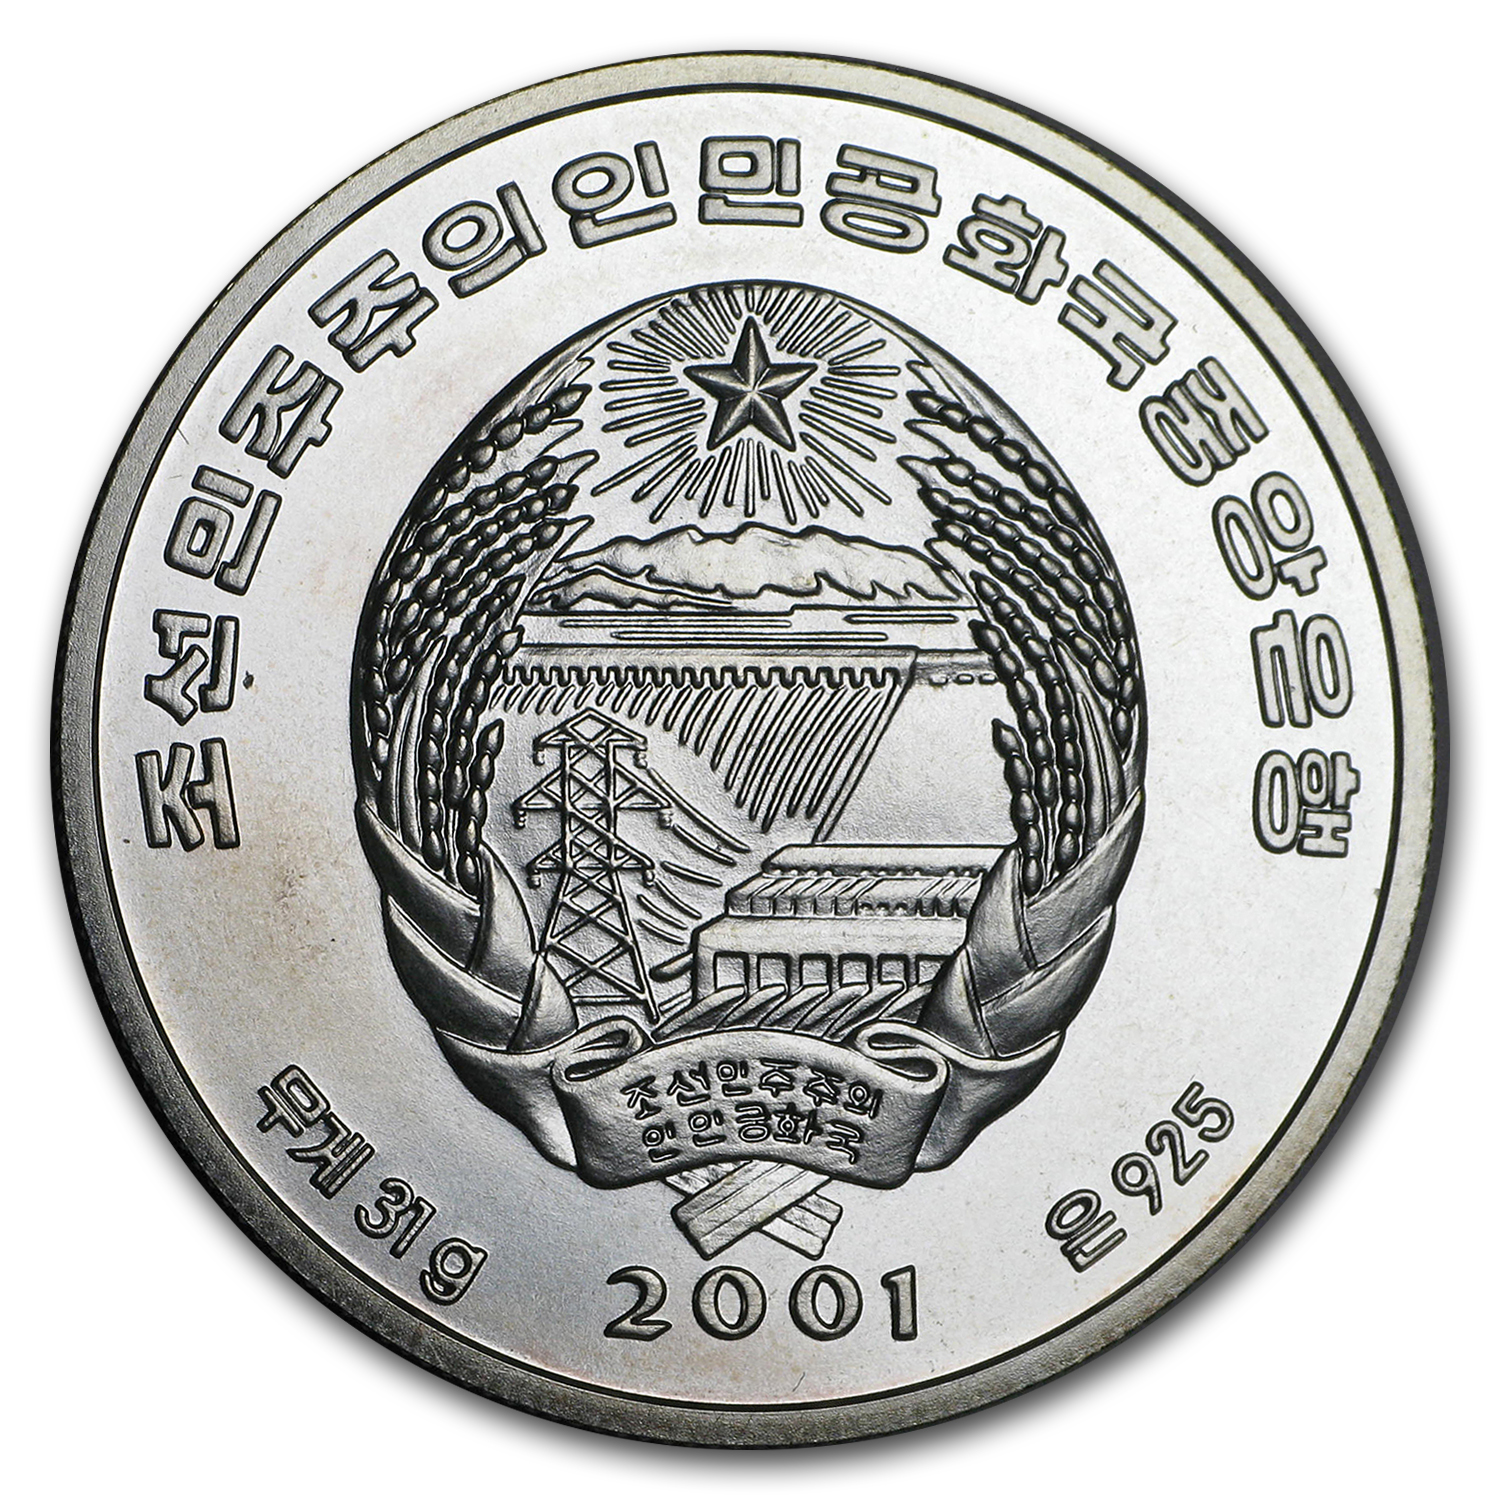 2001 North Korea Silver 10 Won BU